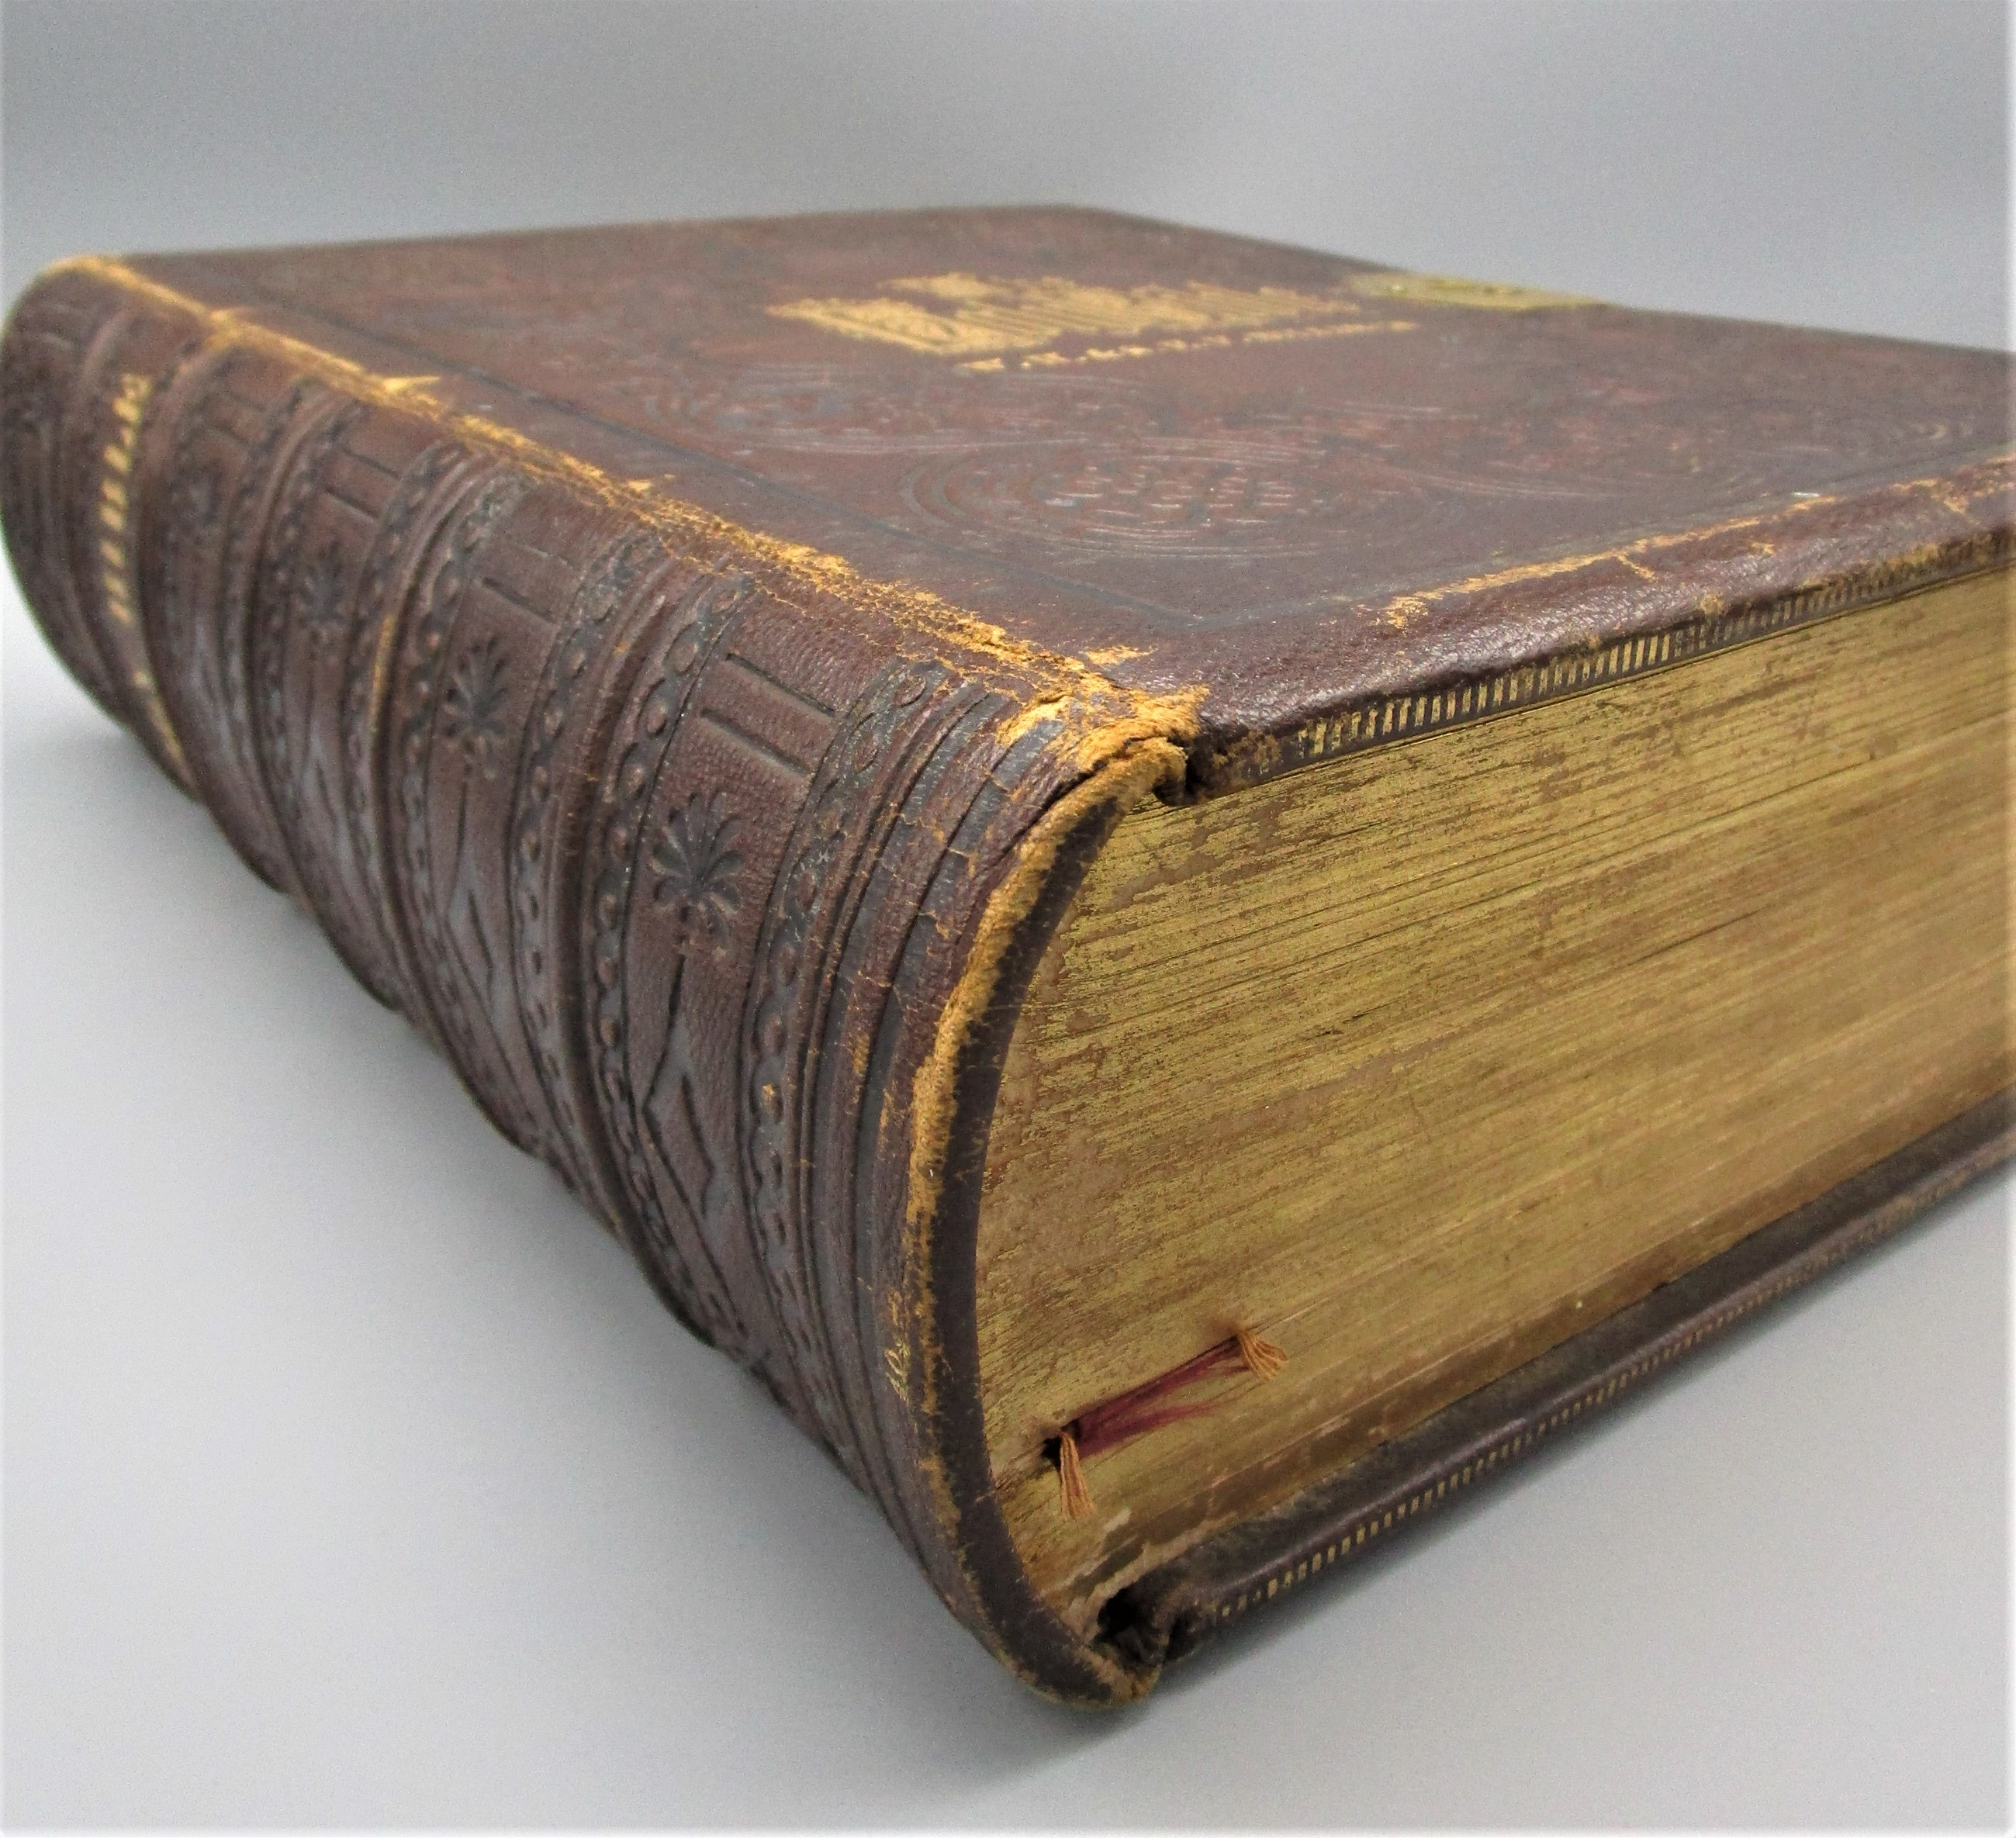 BILLINGS FAMILY BIBLE, by William W. Harding - 1871